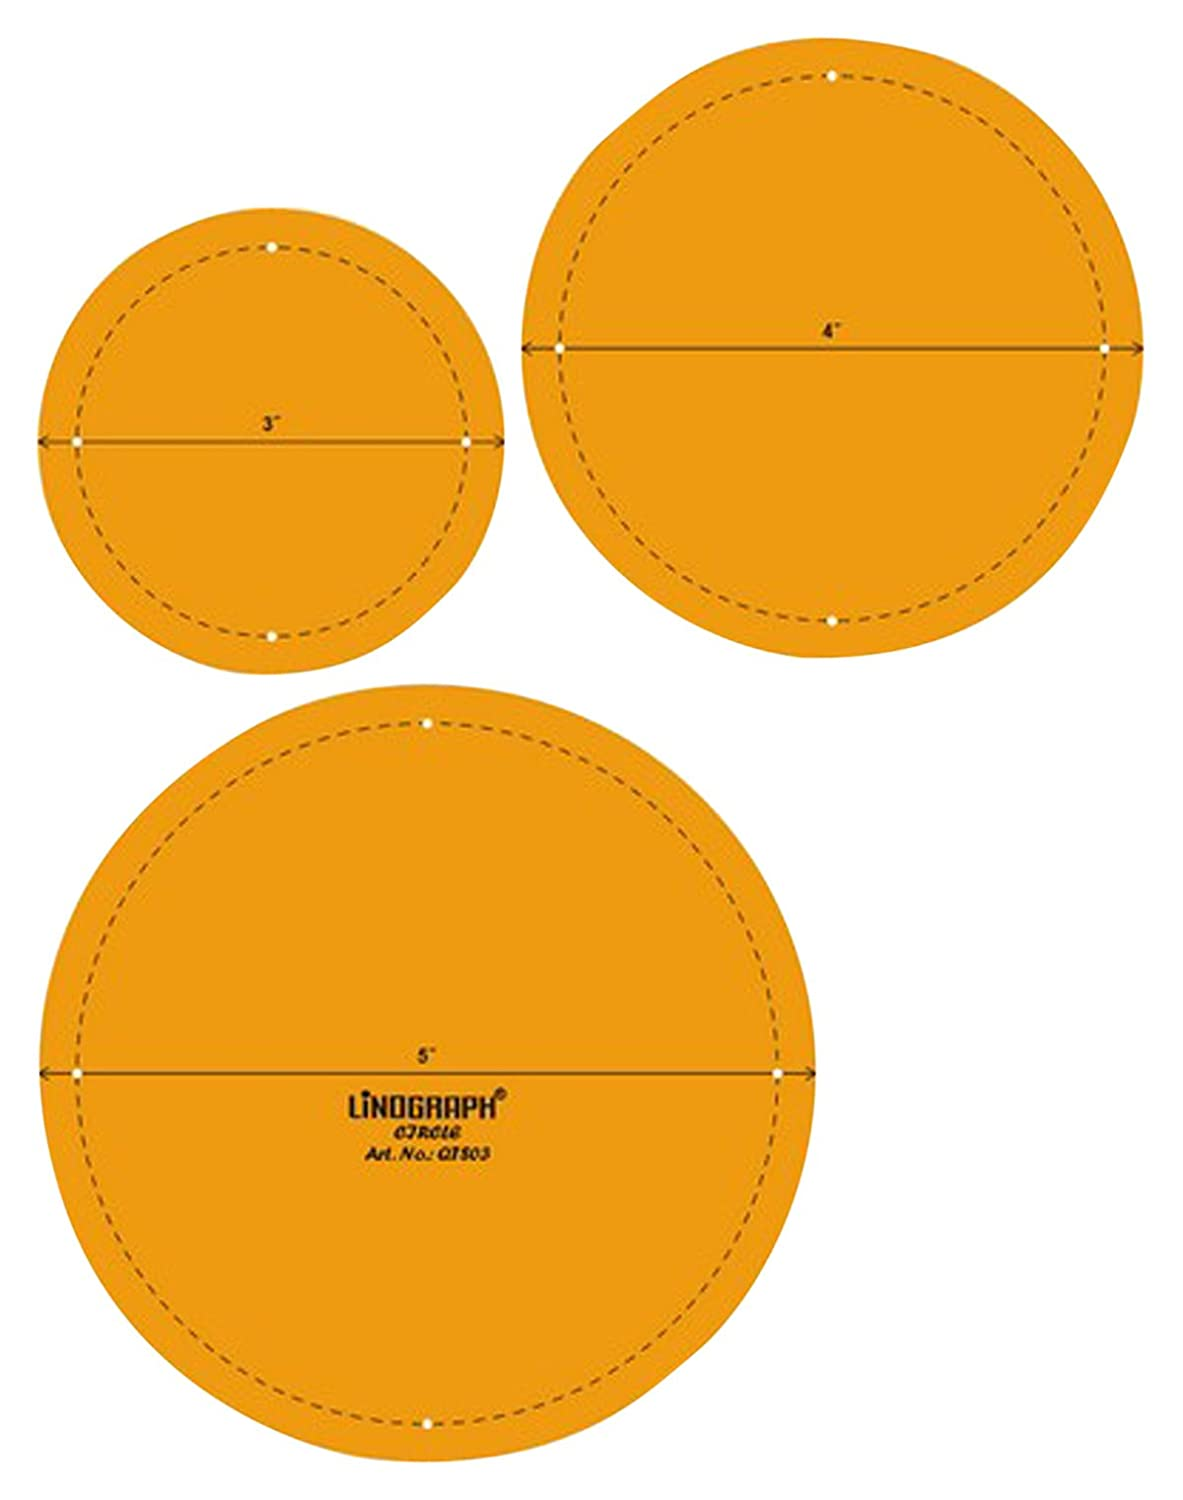 Circle Quilting Patchwork Shape Scale Template Set of 3 Pcs LINOGRAPH